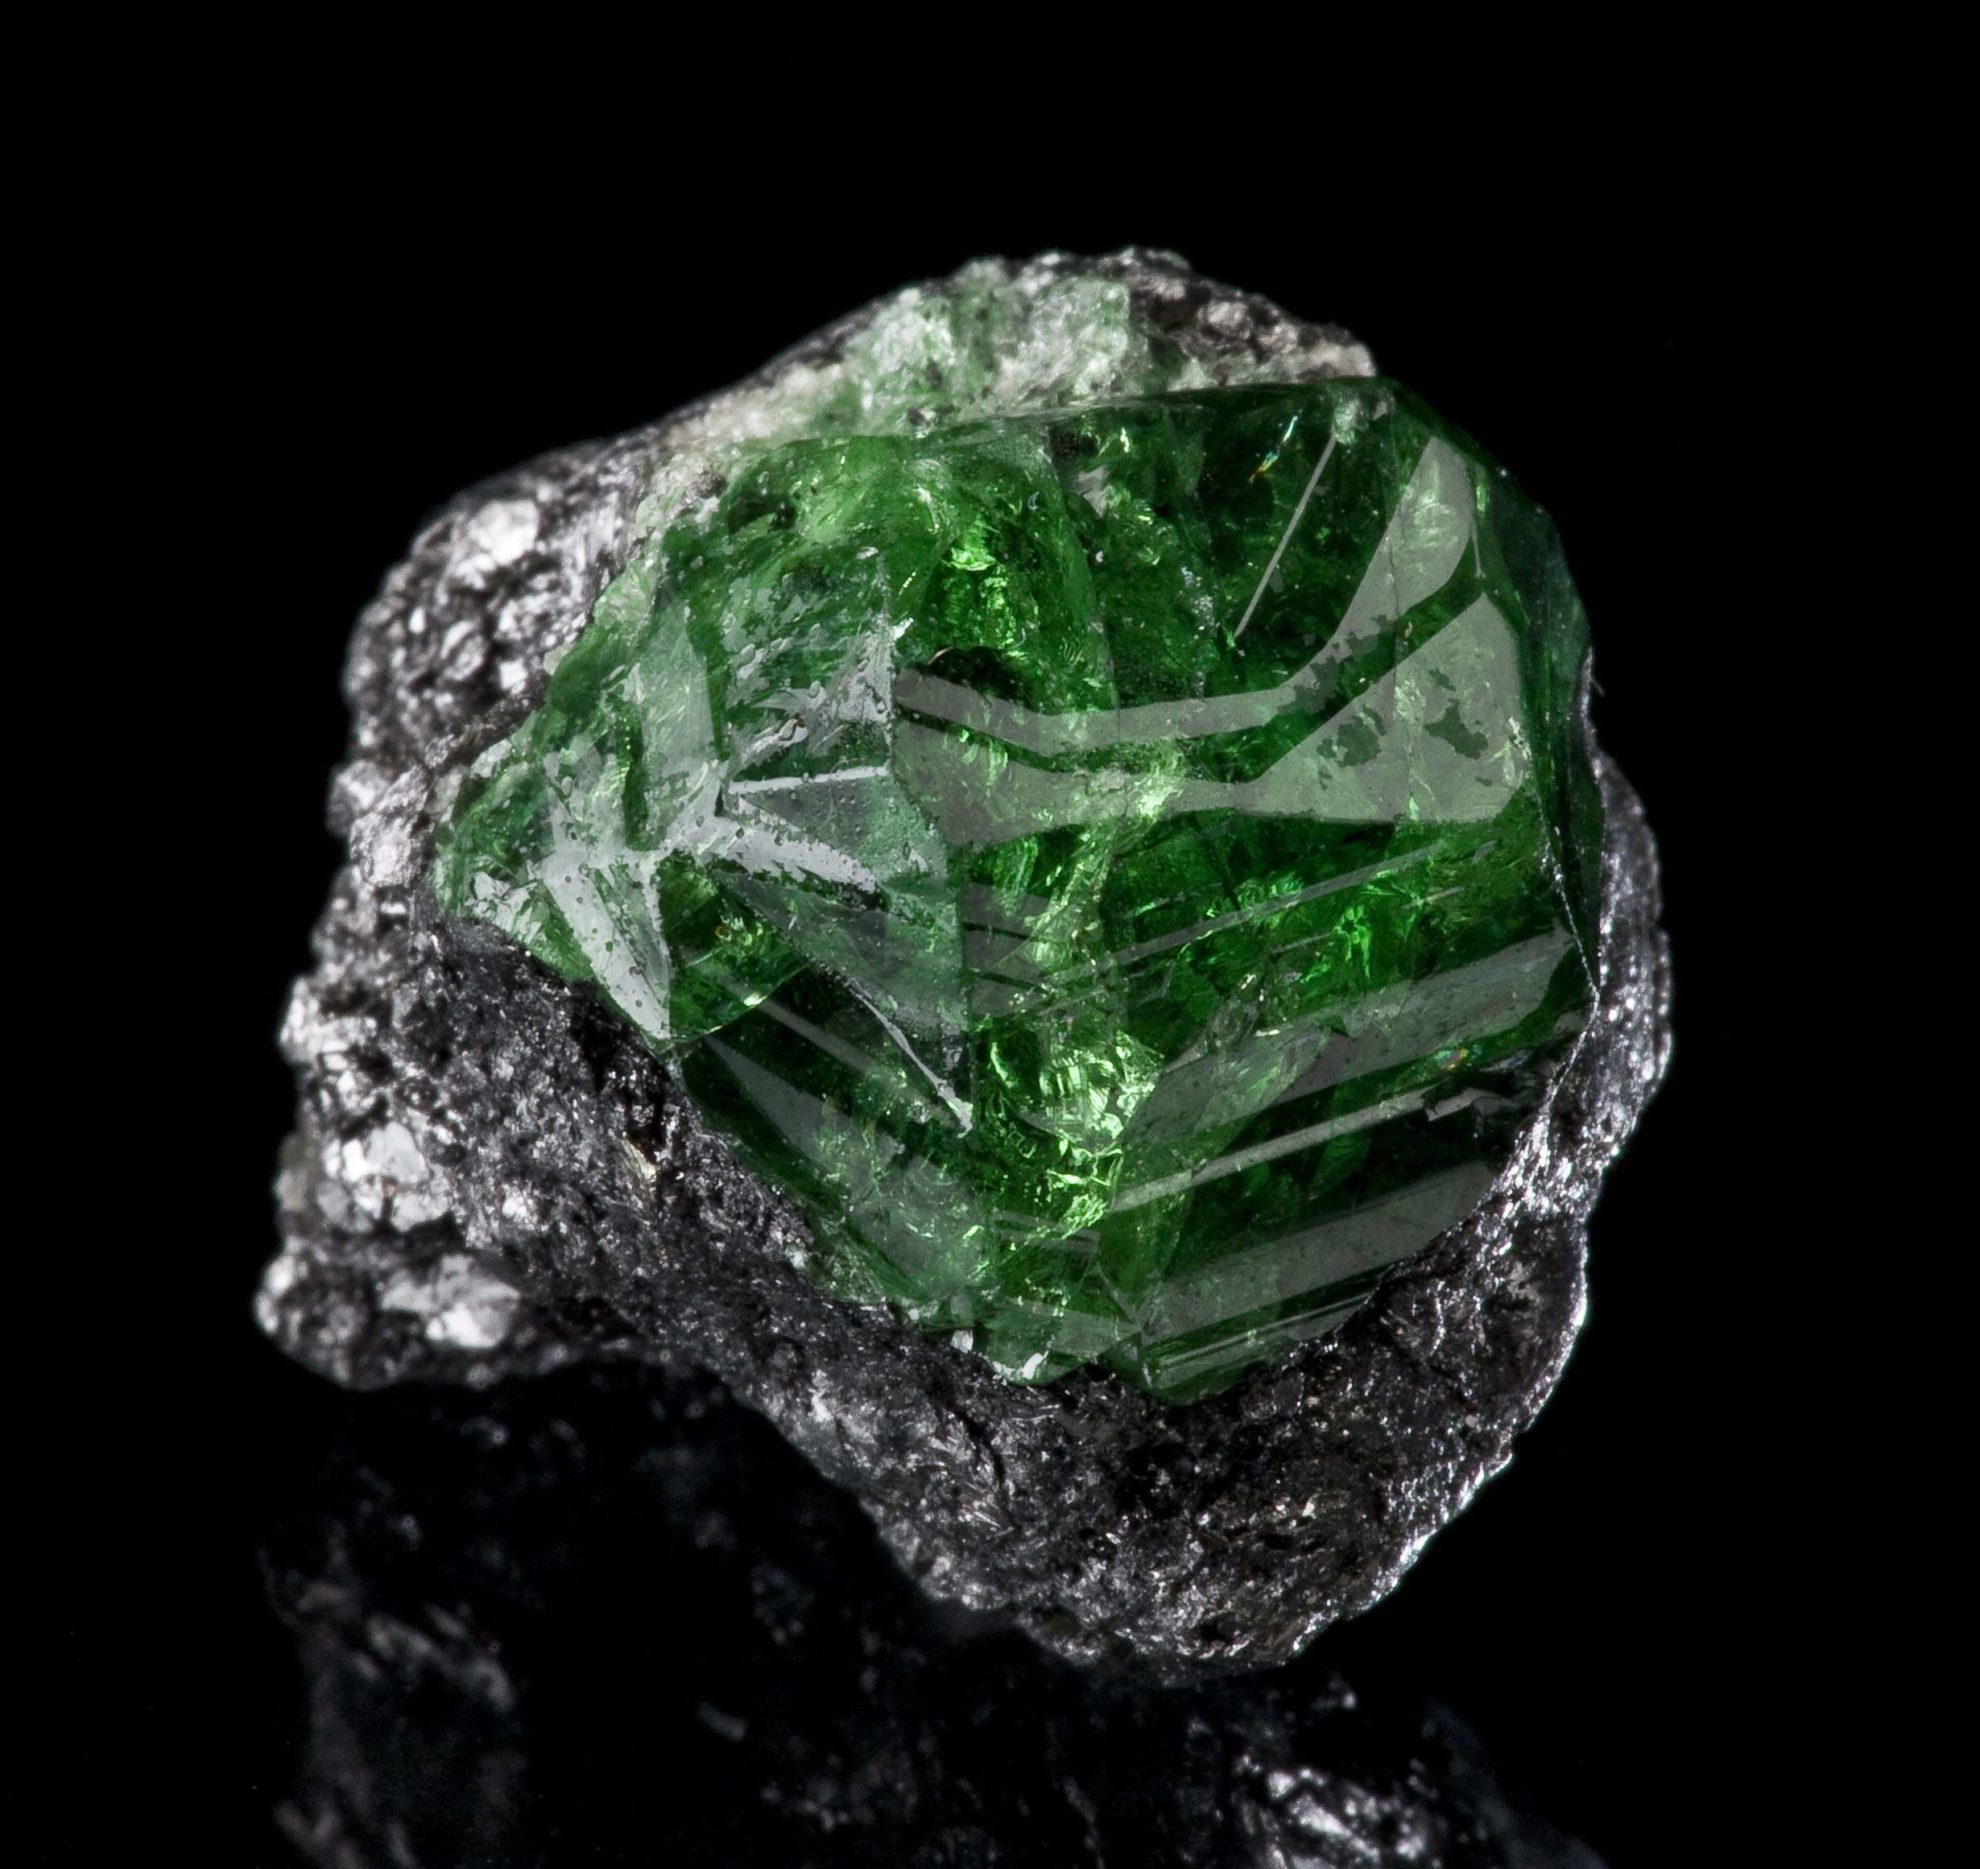 """Tsavorite Garnet on graphite,"" Merelani Hills, Lelatema Mts, Arusha Region, Tanzania. © Rob Lavinsky, www.iRocks.com. Used with permission."